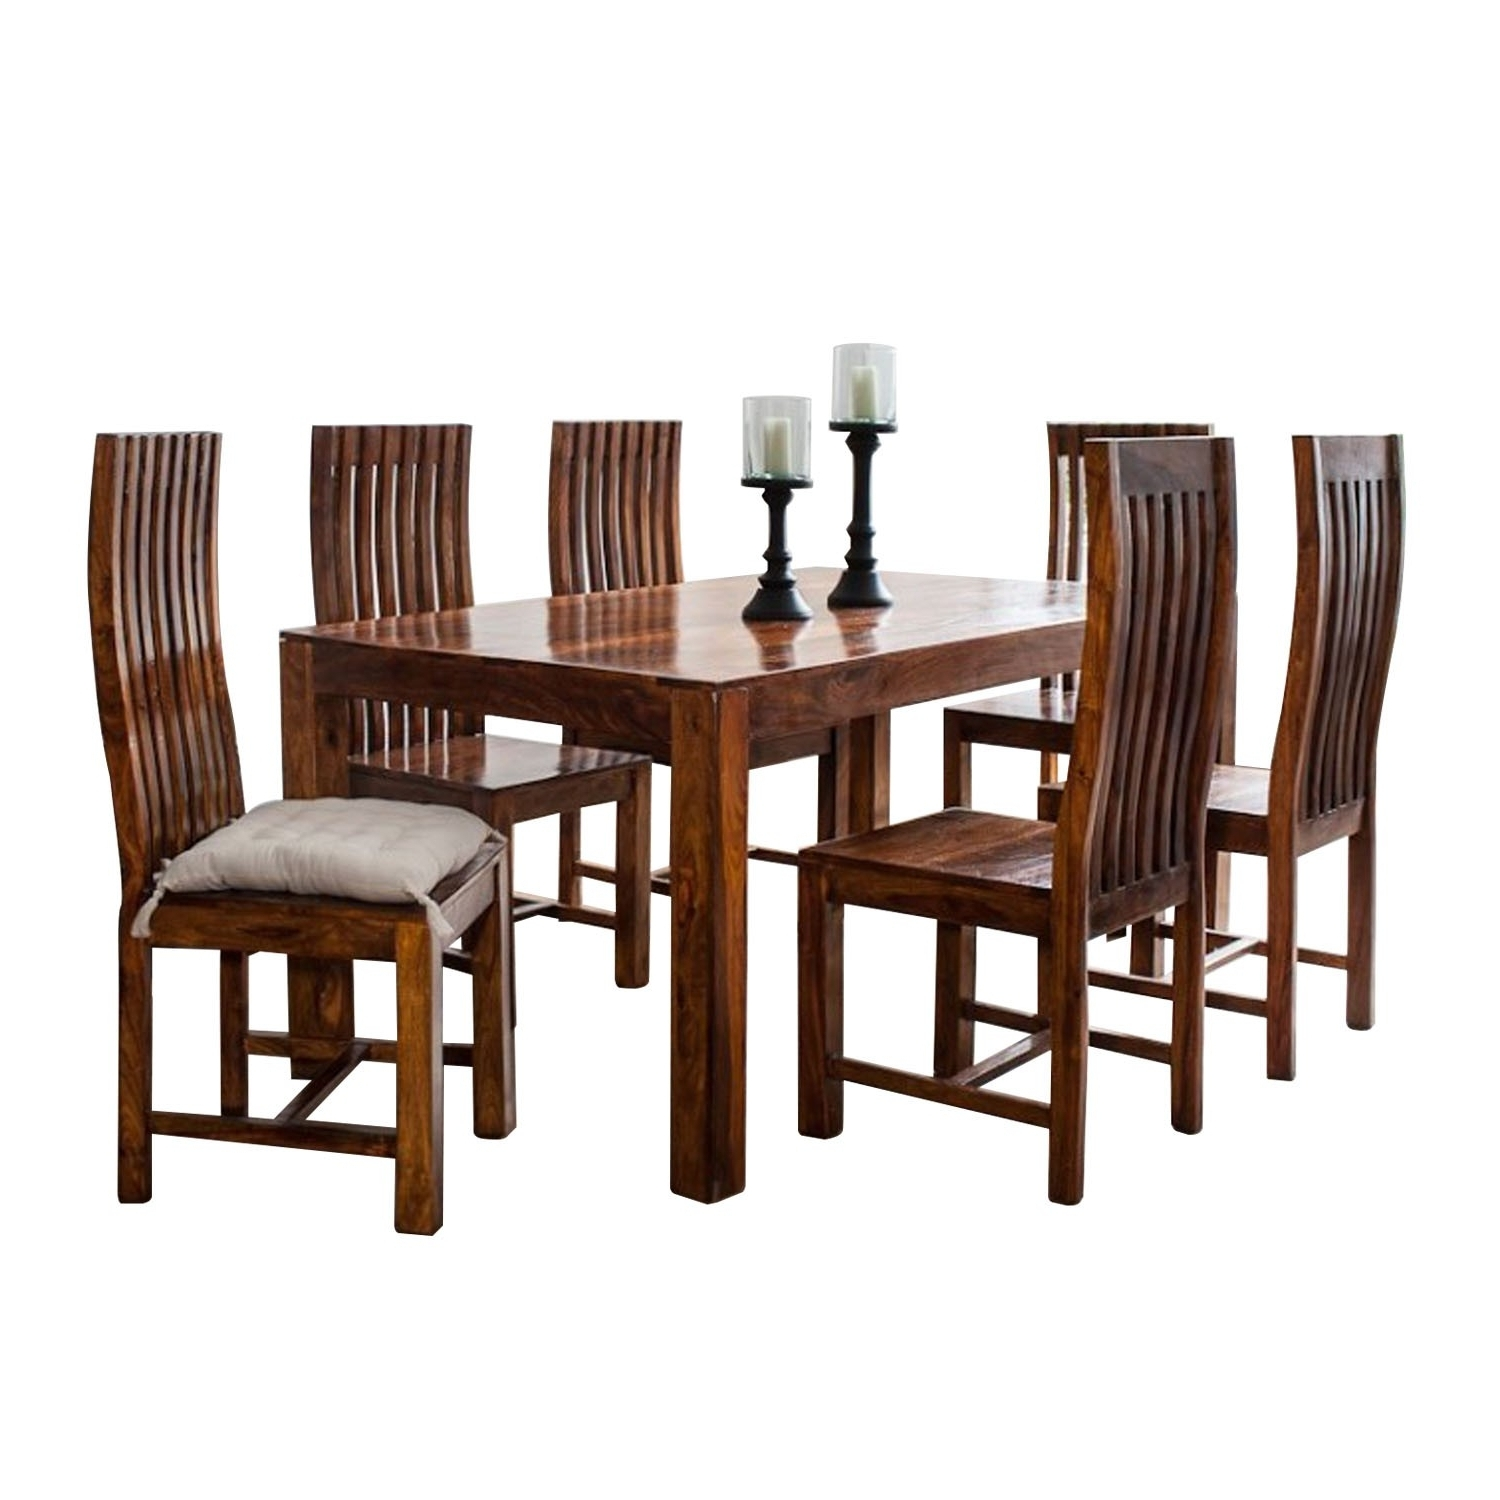 Sheesham Dining Tables 8 Chairs Pertaining To Most Popular Sheesham Wood Dining Table Red Dining Set (View 20 of 25)